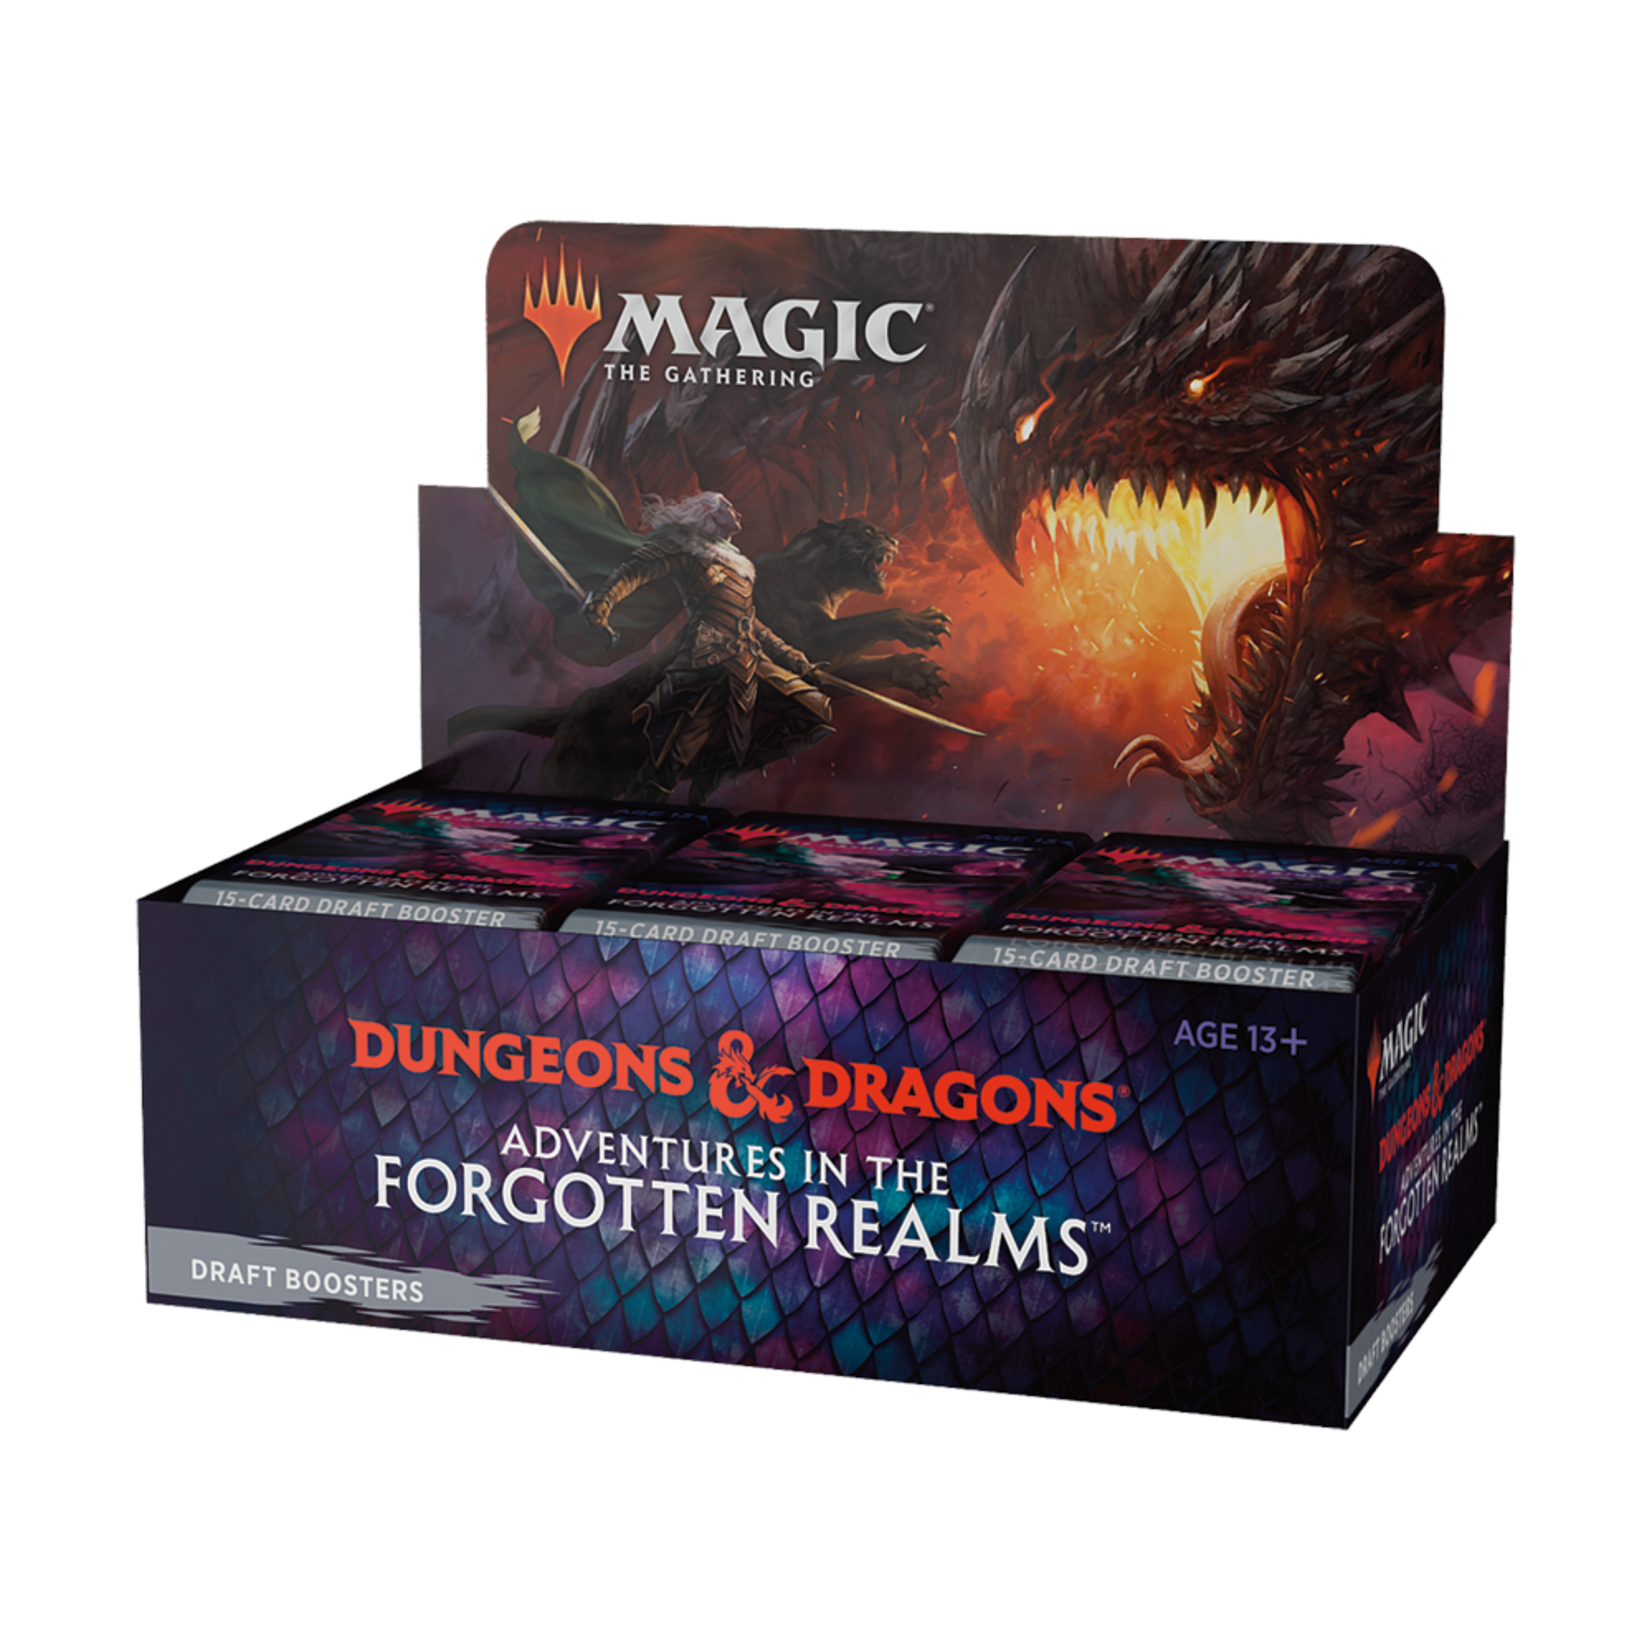 Wizards of the Coast Magic the Gathering: Dungeons & Dragons: Adventures in the Forgotten Realms - Draft Booster Box